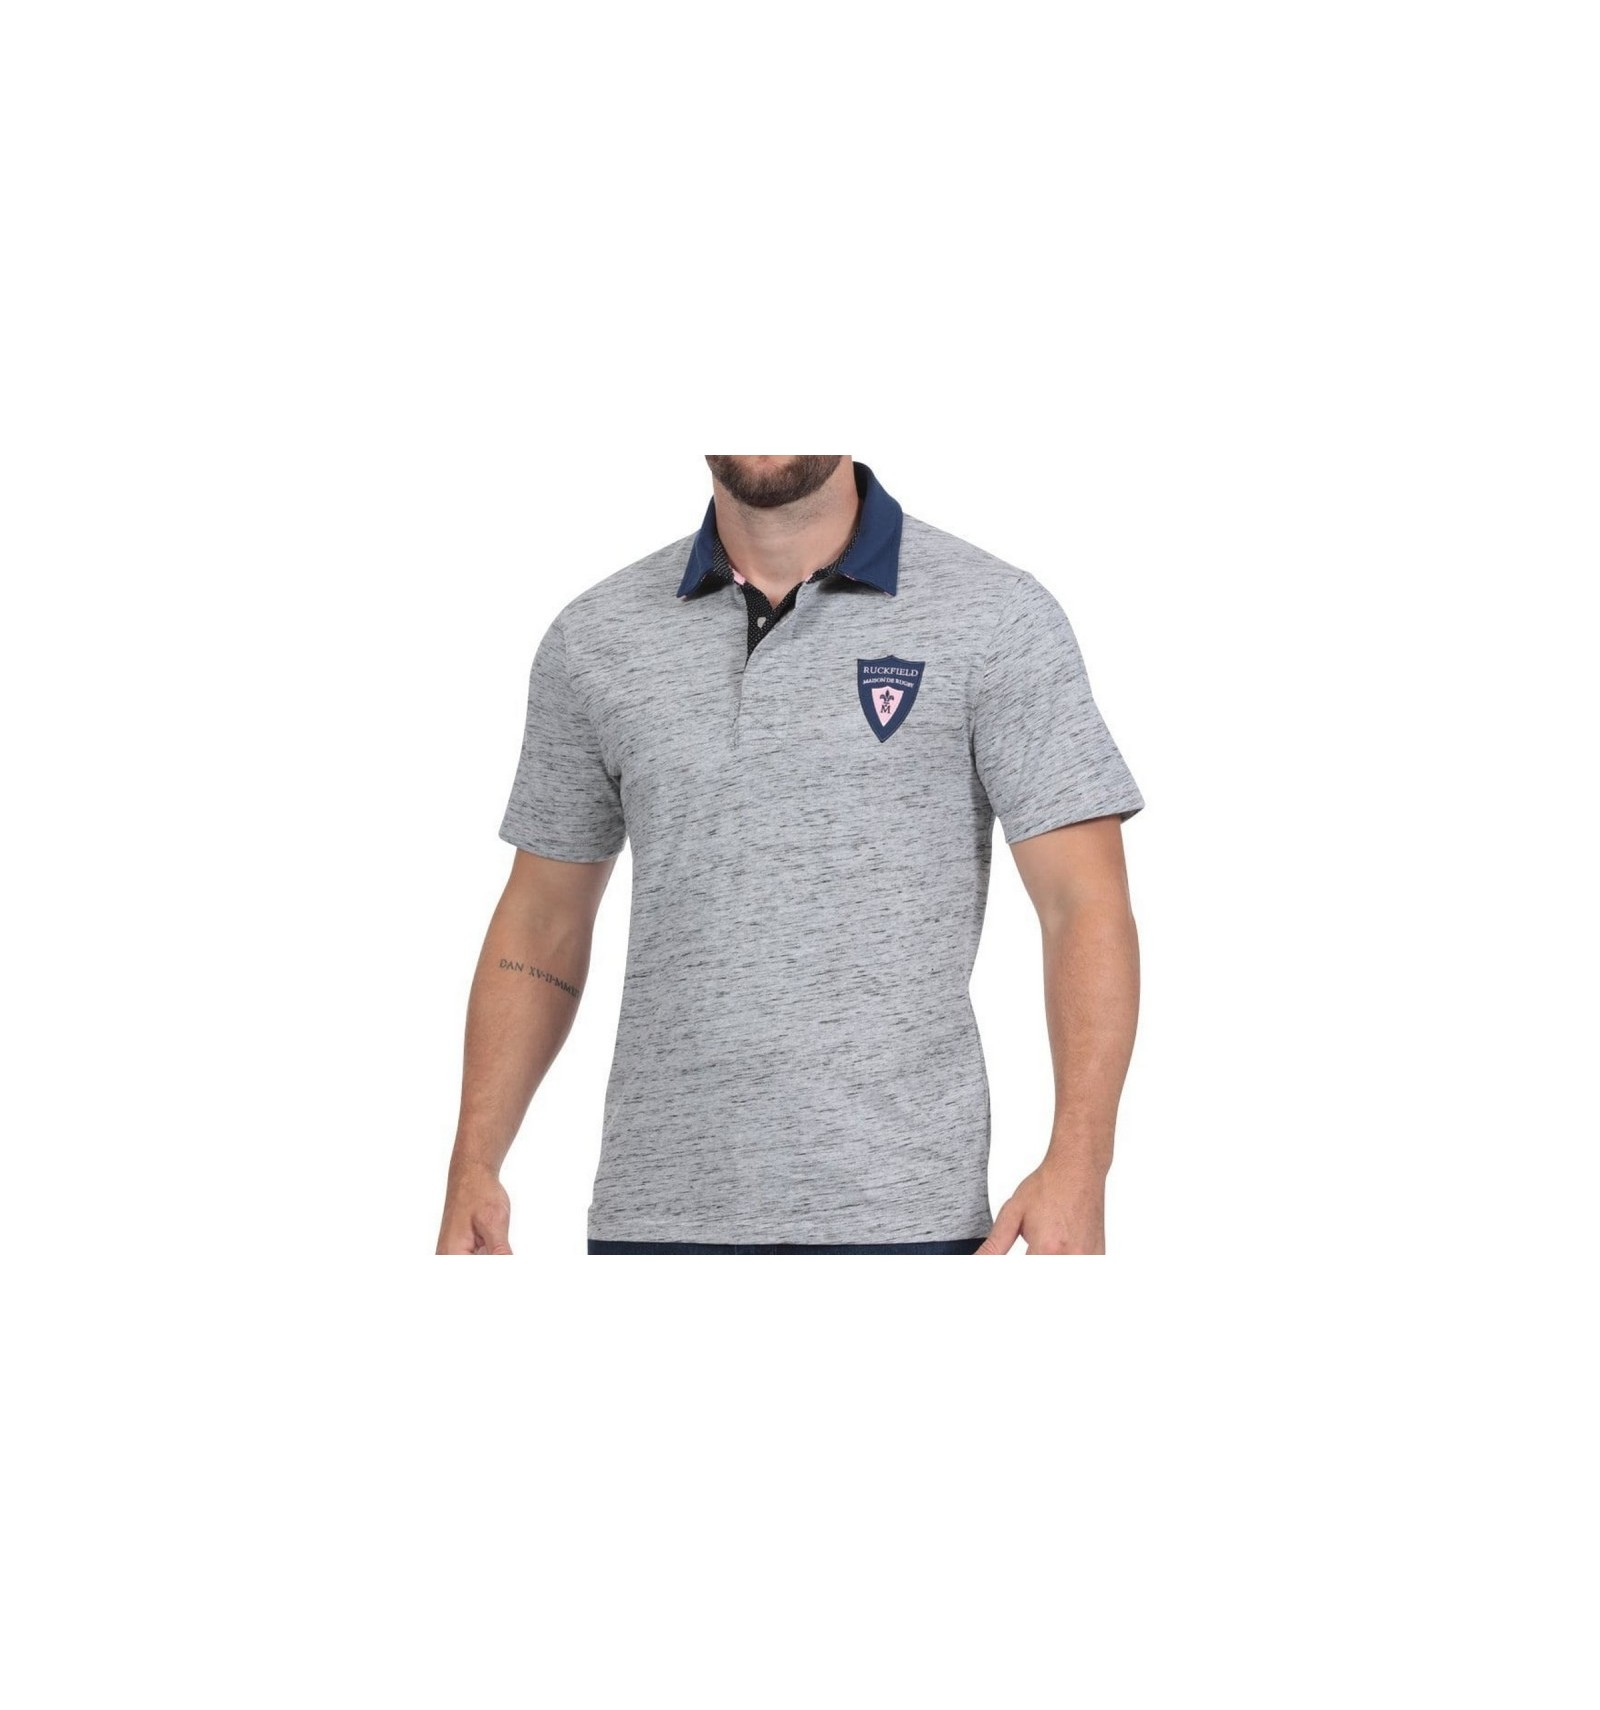 Ruckfield Polo Rugby Gris Chiné - Gris eaLyfL